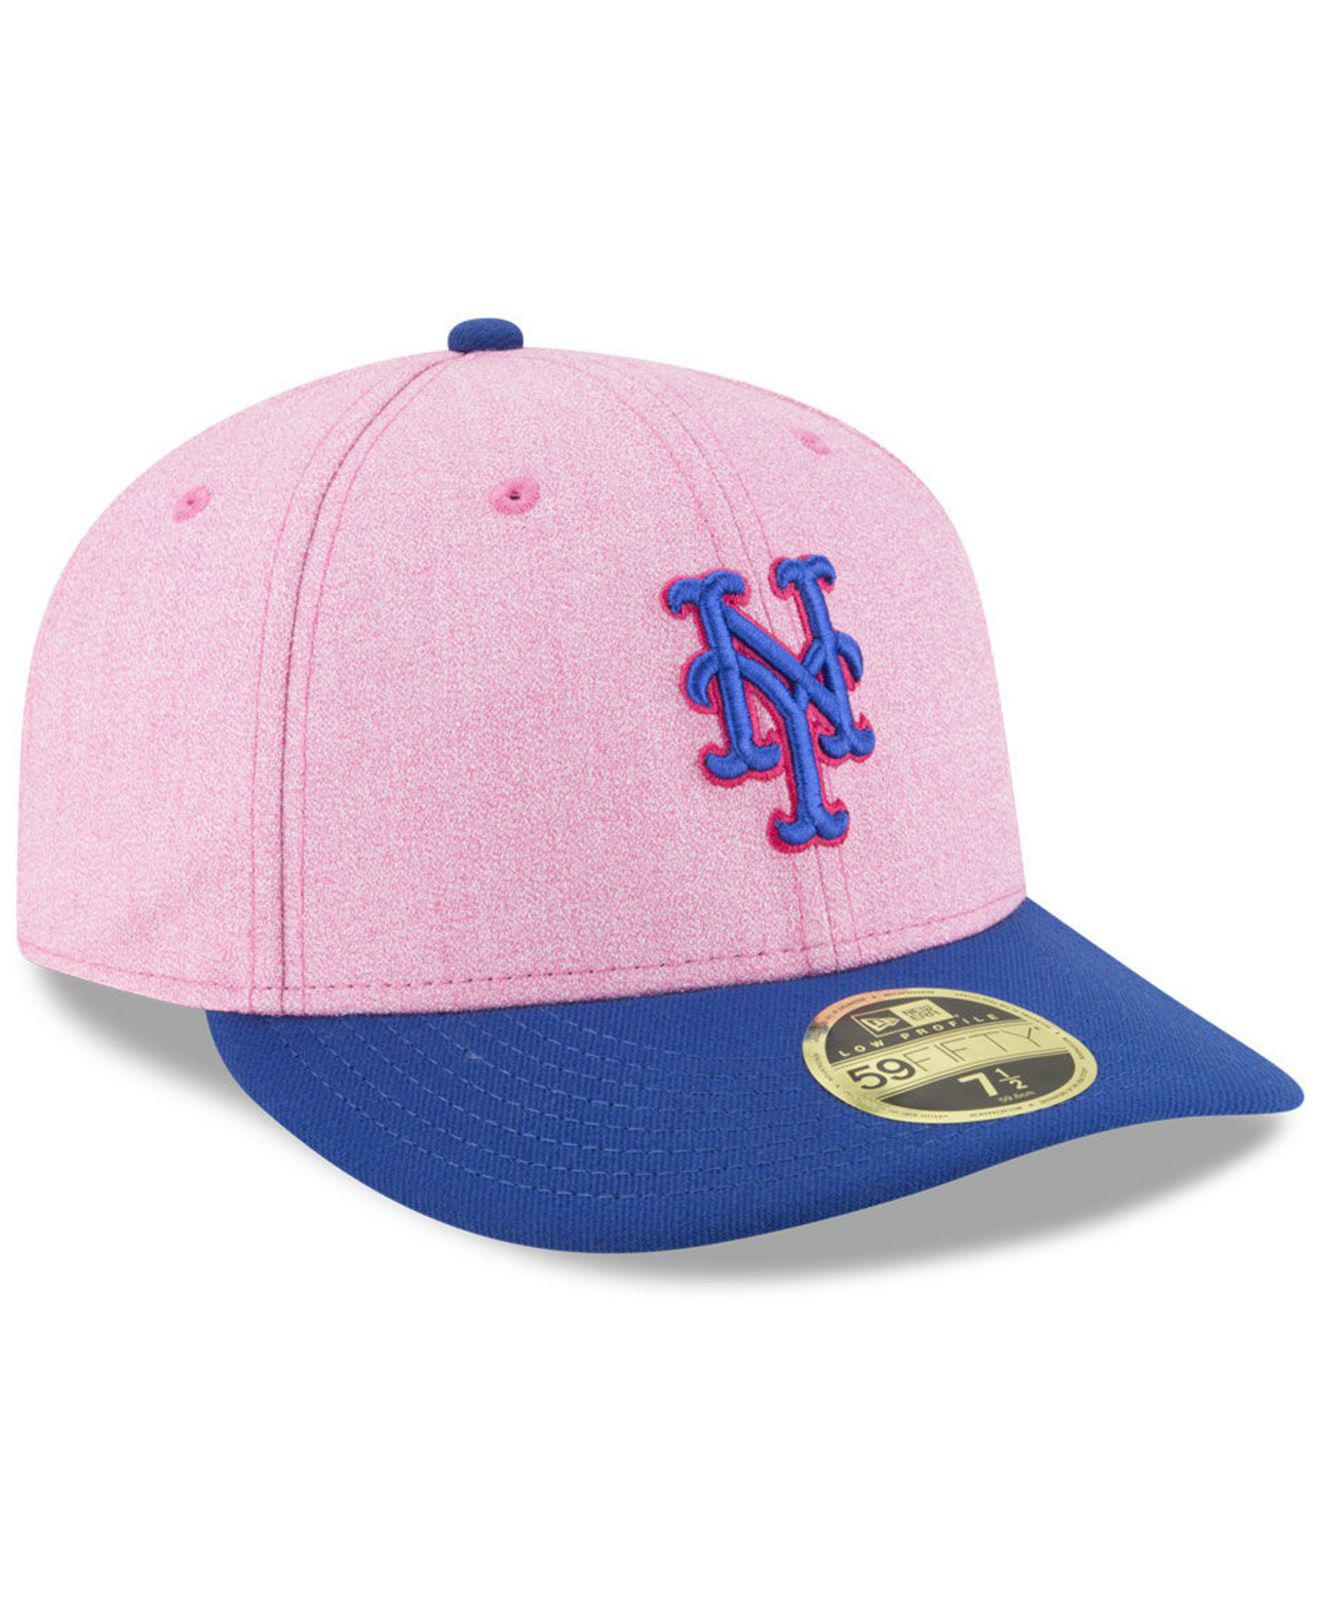 reputable site 947f1 219ad new style new york mets new era 2016 mlb mothers day 9twenty cap lids 9c127  48f1a  australia lyst ktz new york mets mothers day low profile 59fifty  fitted ...